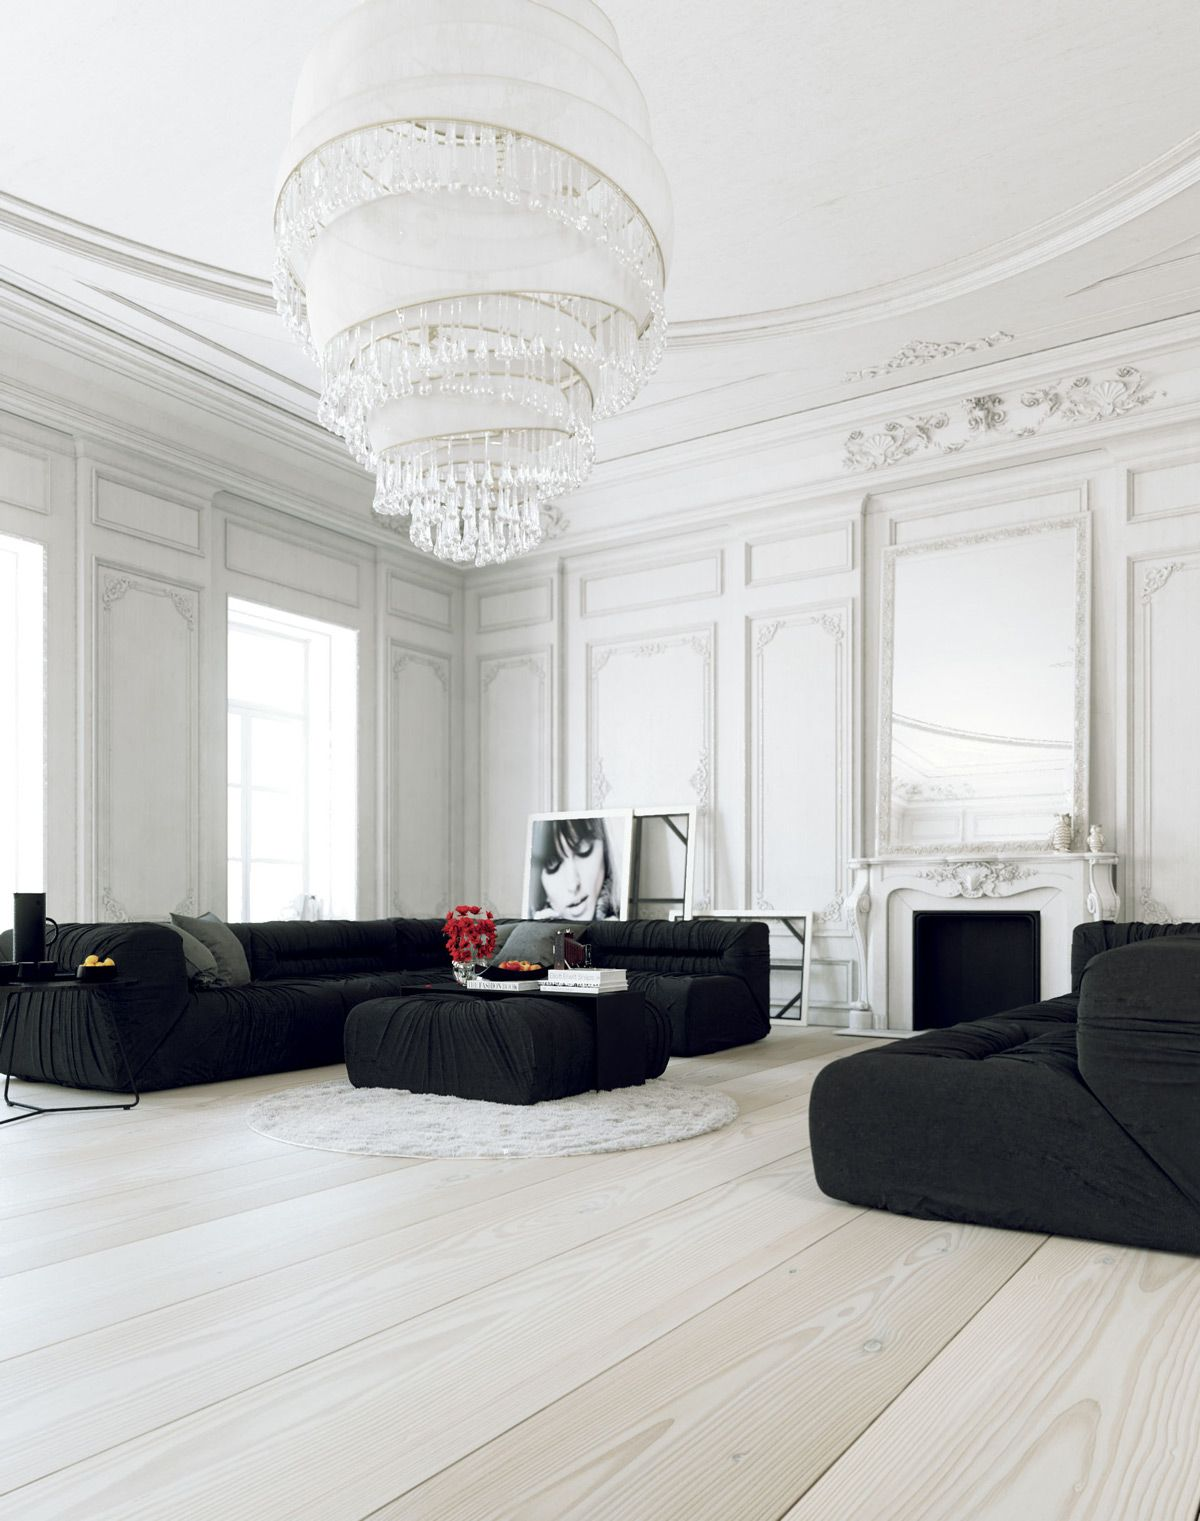 Black and White Living Room Designs With Trendy and Perfect Decor ...